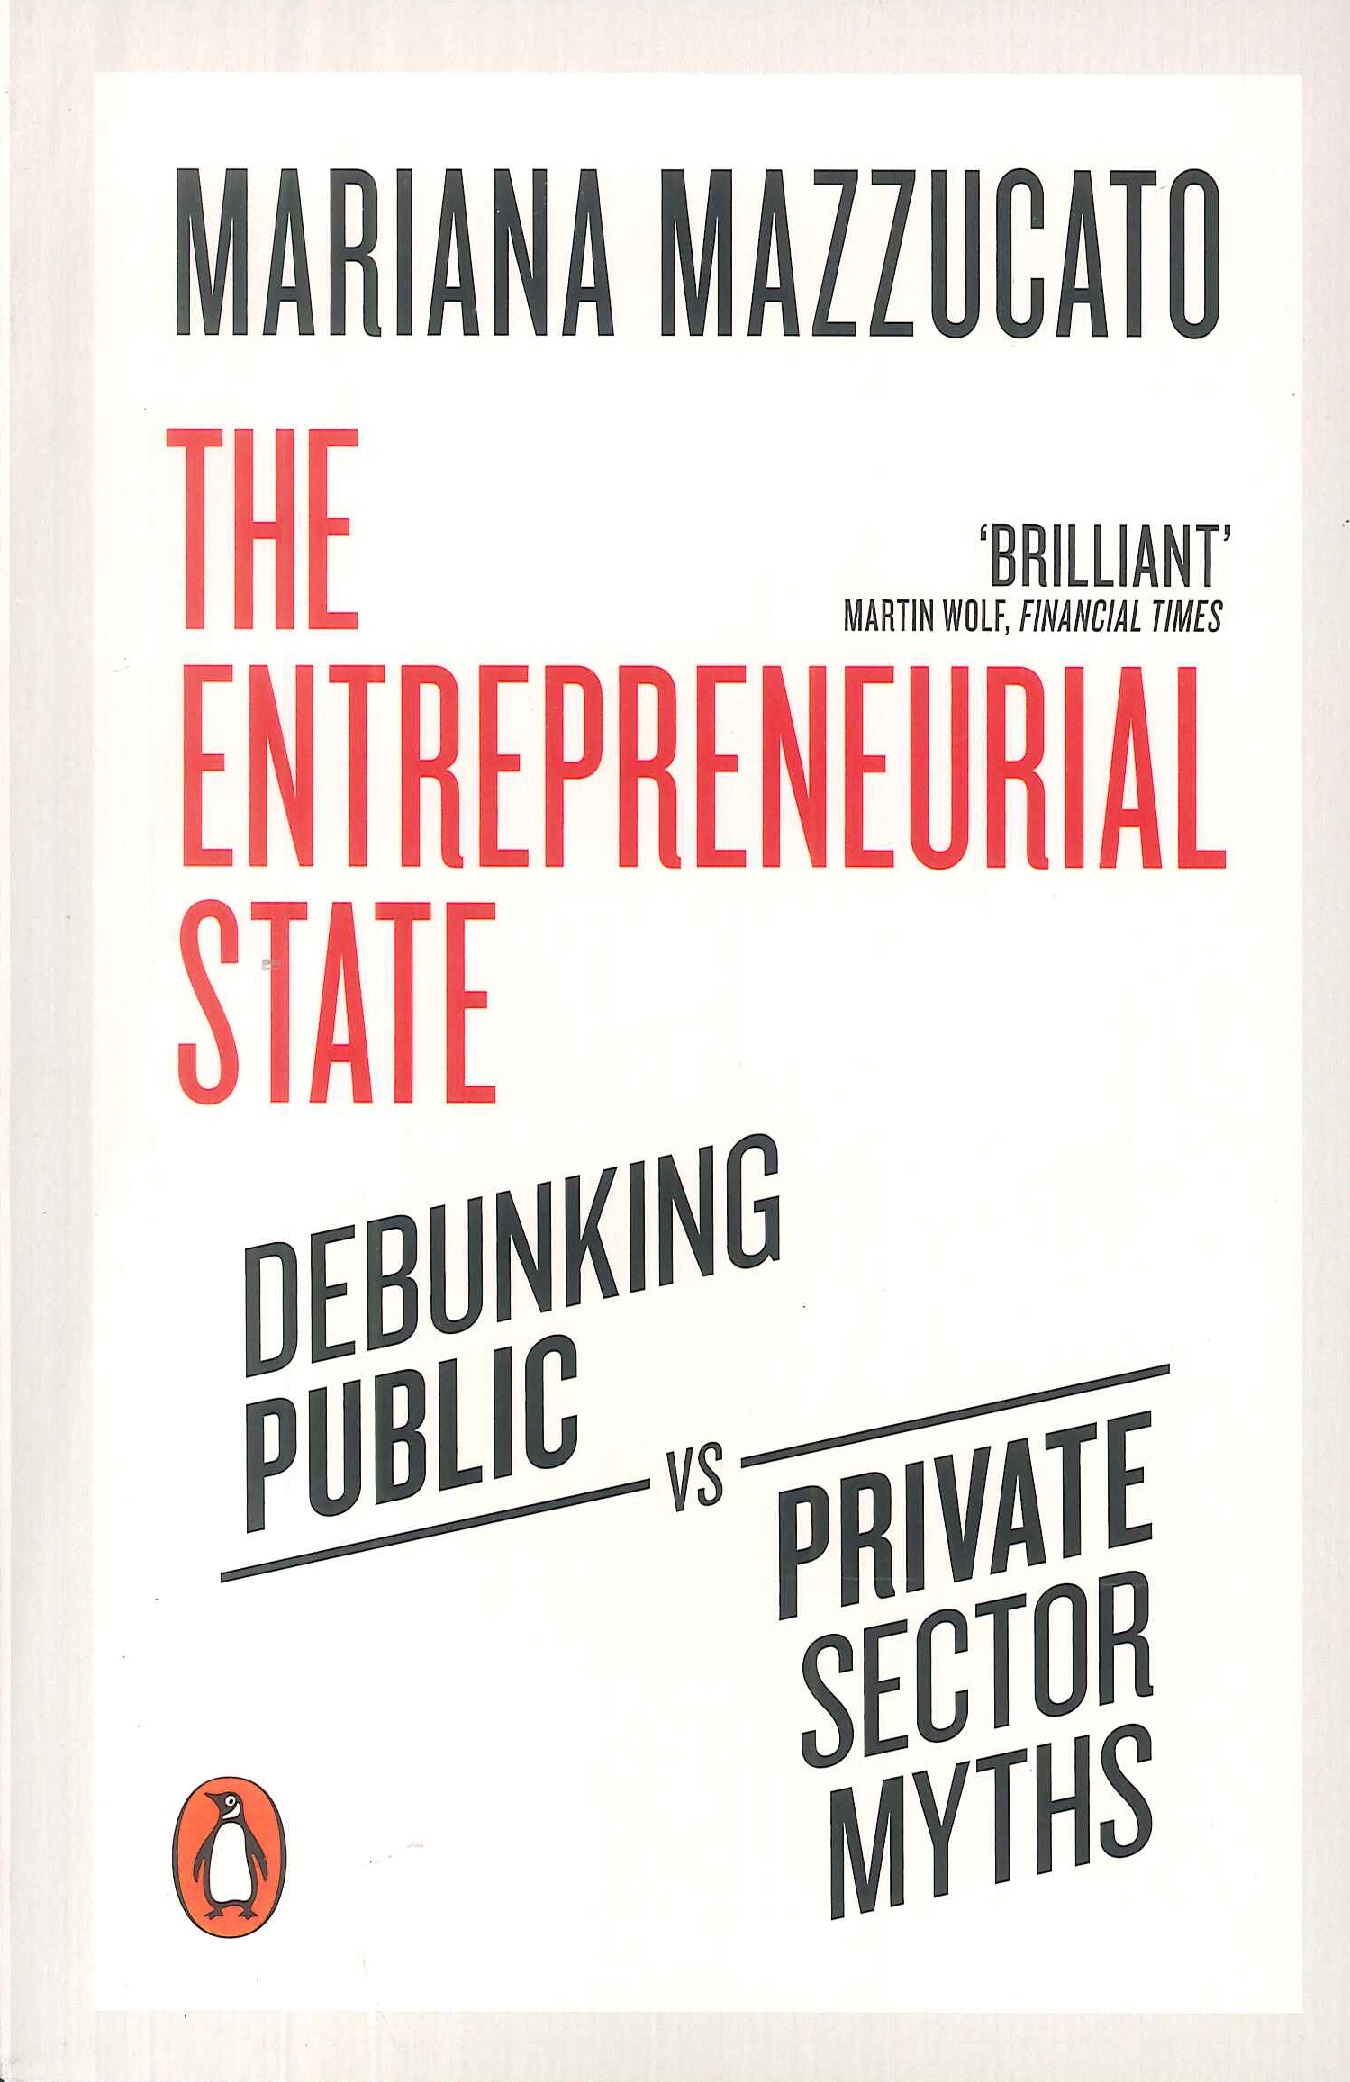 The entrepreneurial state:debunking public vs private sector myths